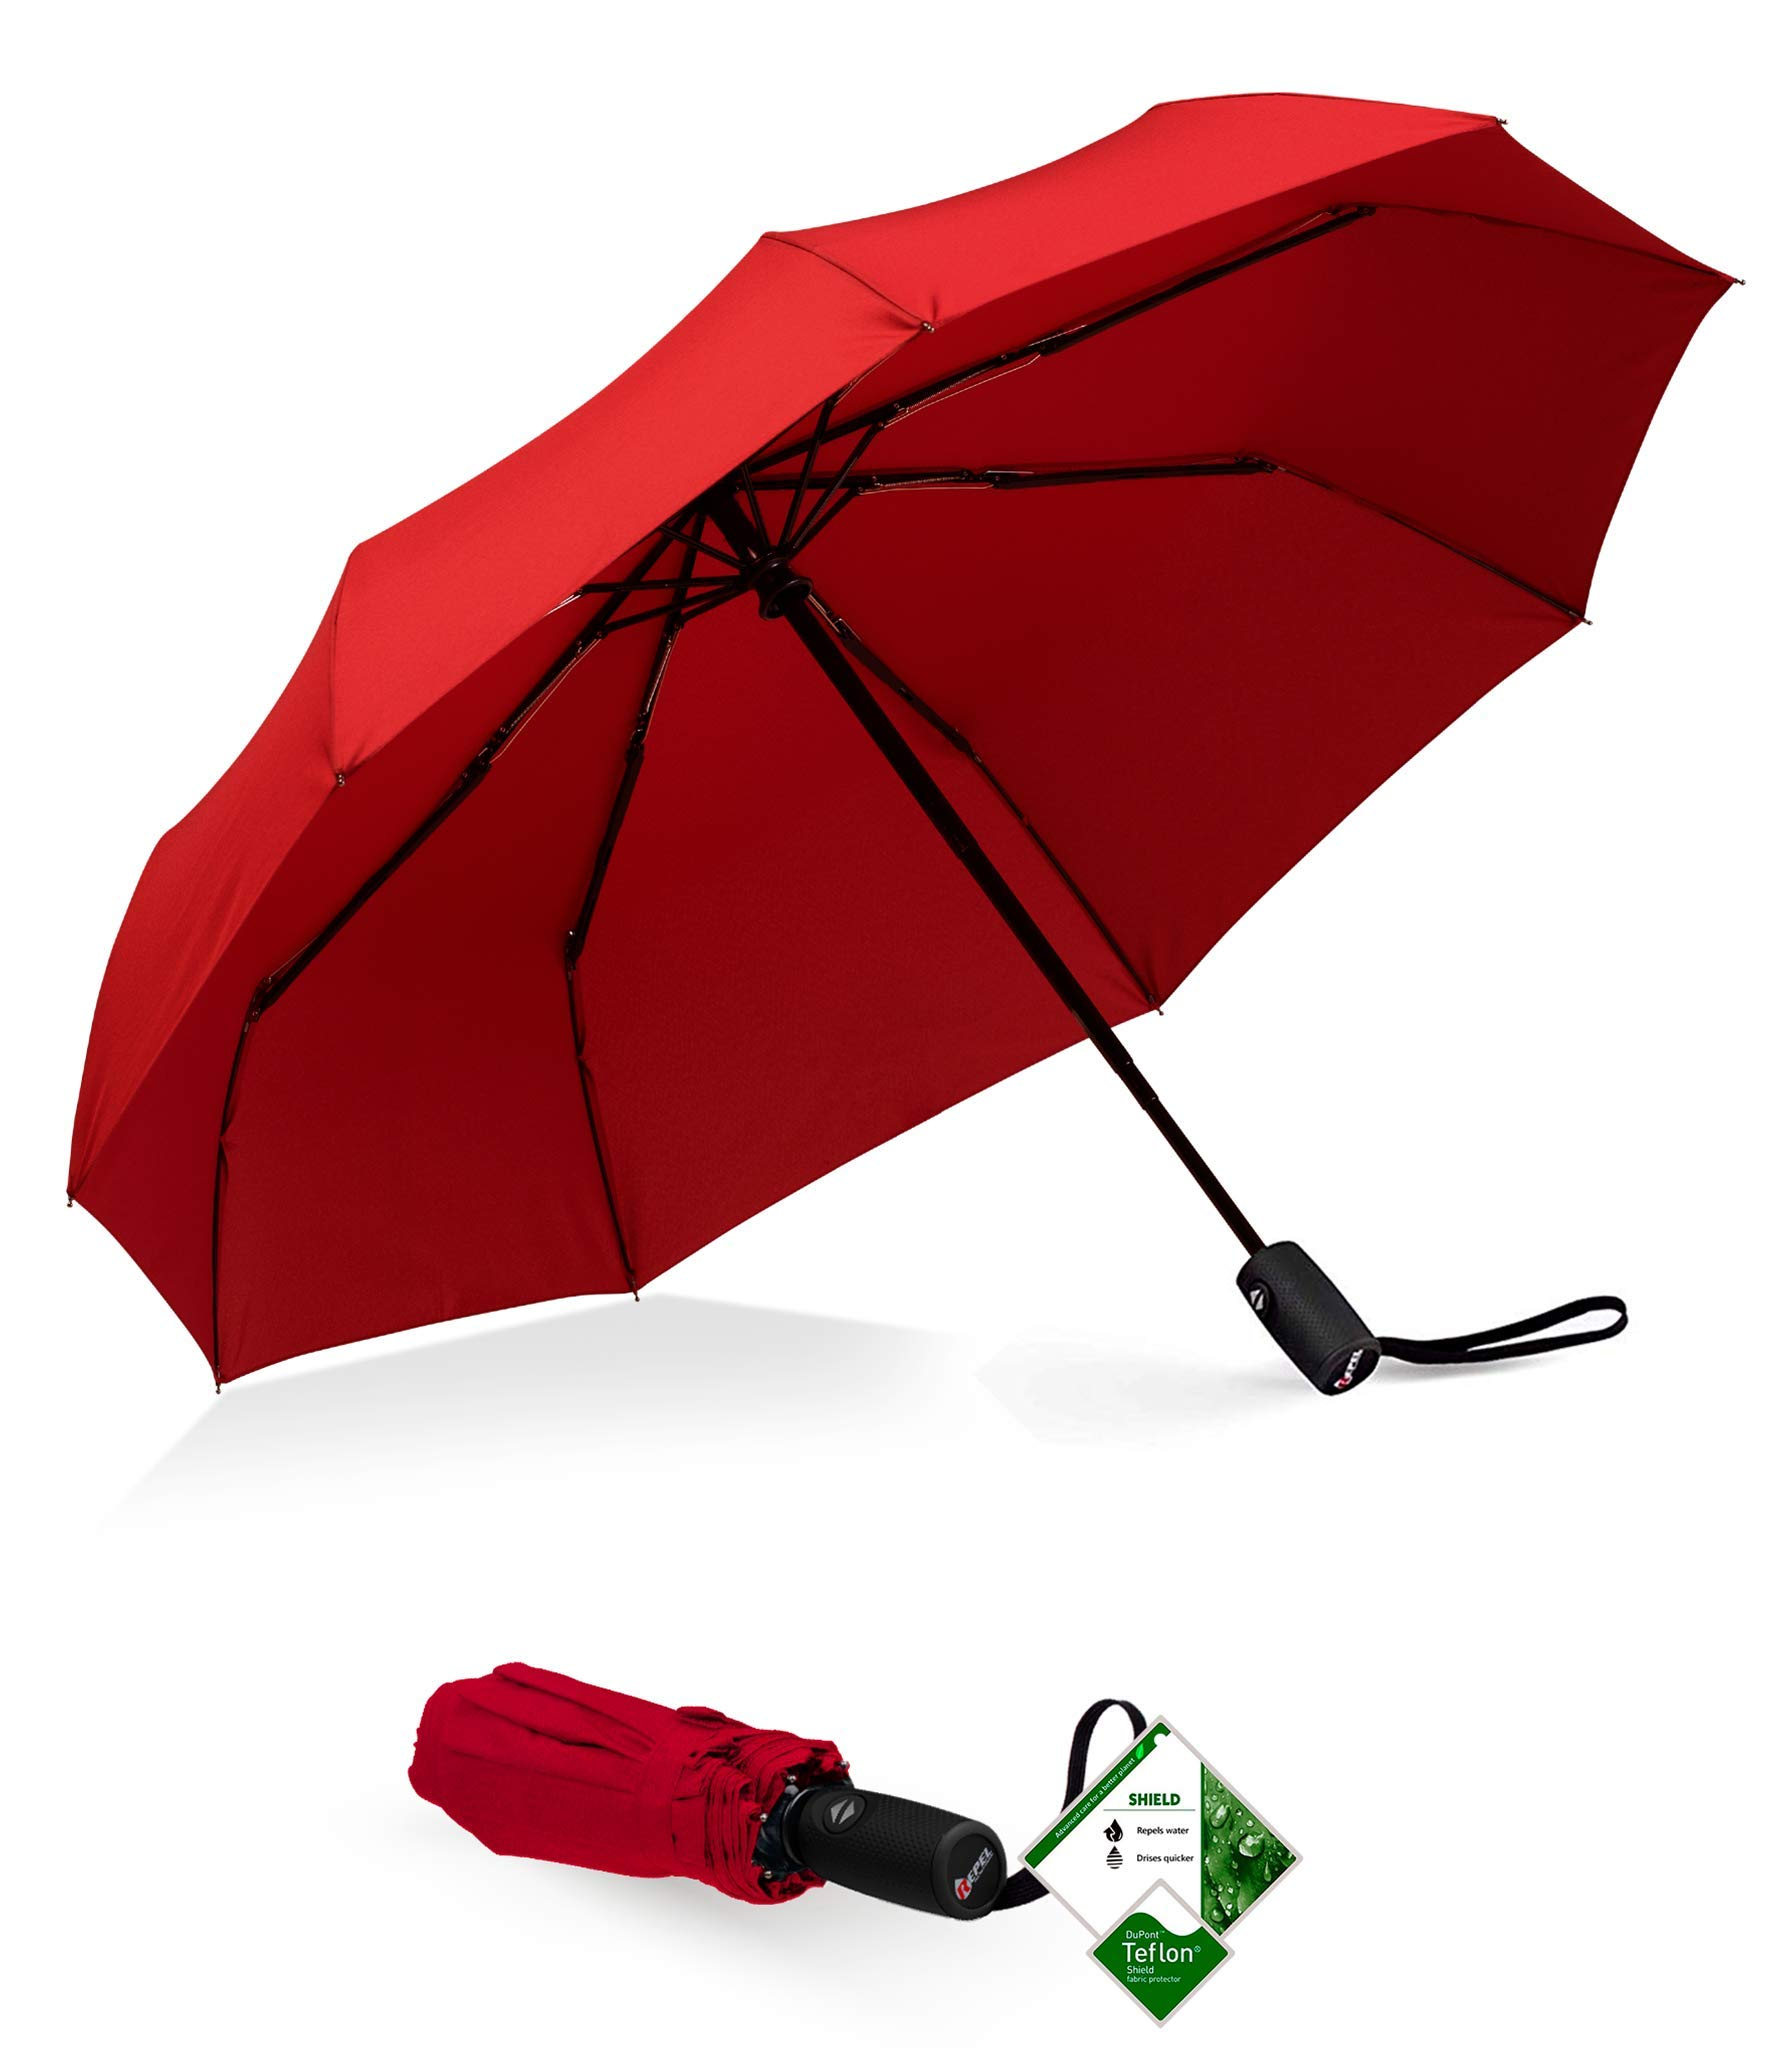 Repel Windproof Travel Umbrella with Teflon Coating (Red) by Repel Umbrella